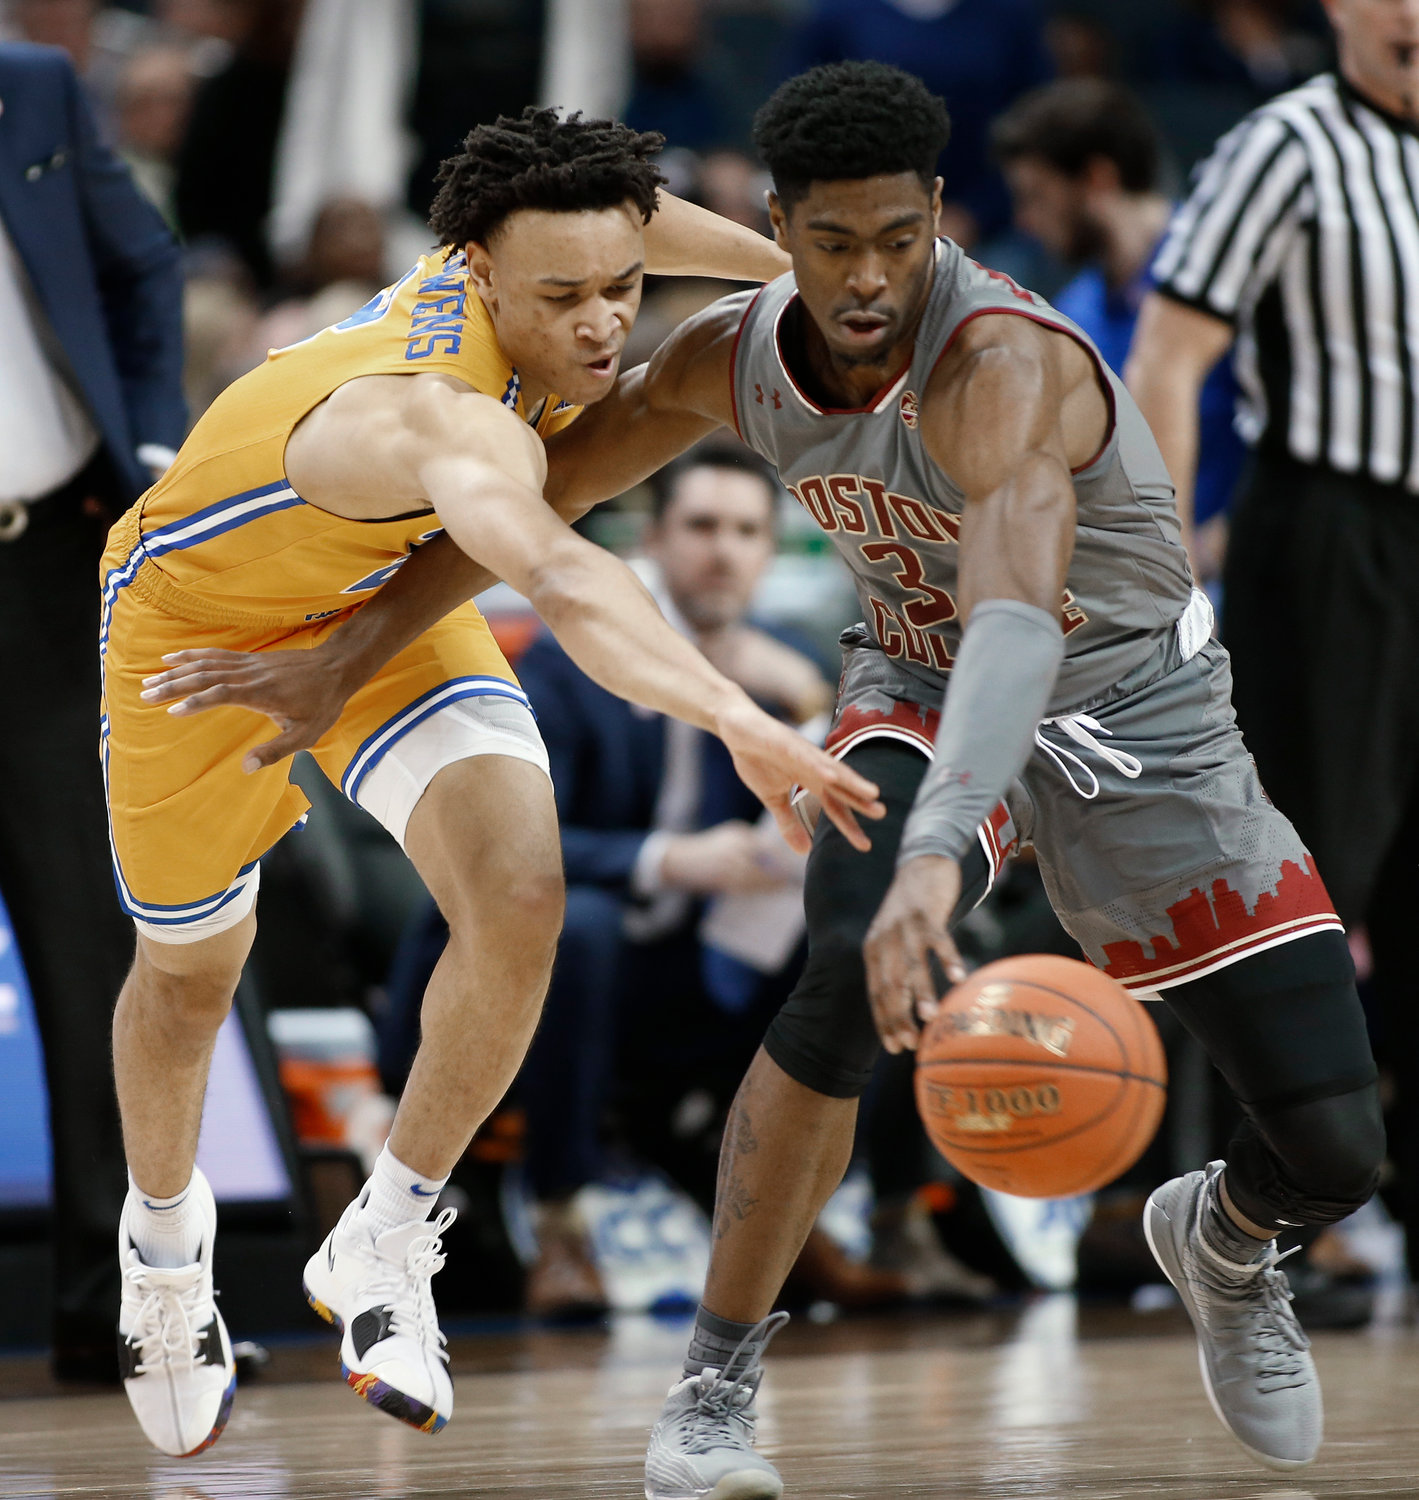 LOOSE BALL — Pittsburgh's Trey McGowens, left, and Boston College's Jared Hamilton chase the ball during the first half of Tuesday's ACC Tournament first-round game in Charlotte, N.C. McGowens scored 26 points as Pitt advanced to a second-round game tonigiht against Syracuse with an 80-70 victory.